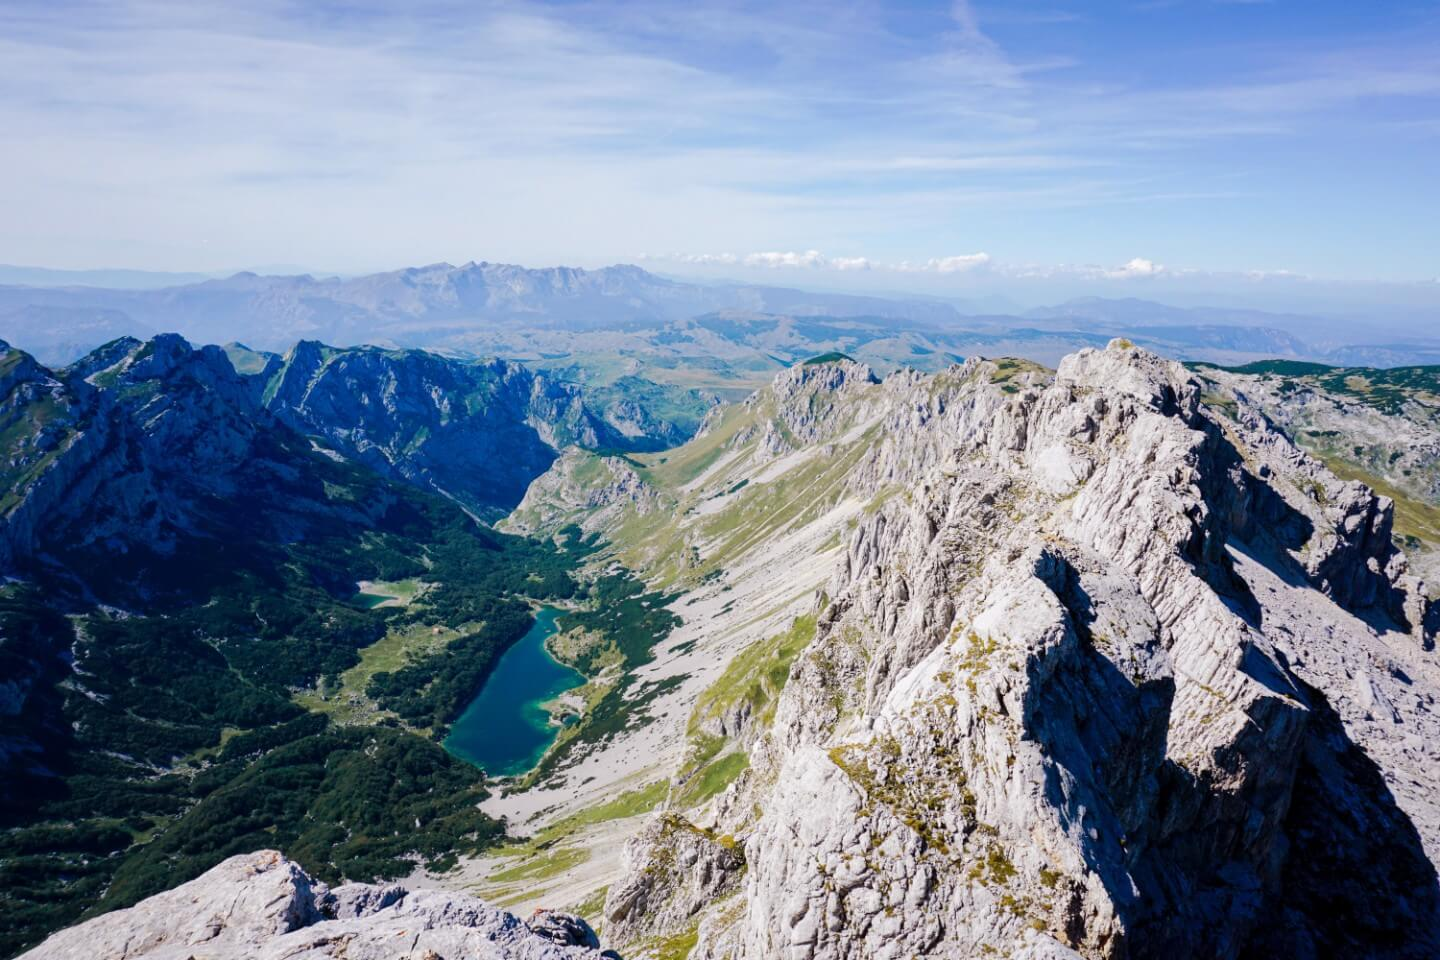 Durmitor National Park Hiking Guide - Bobotov Kuv Summit